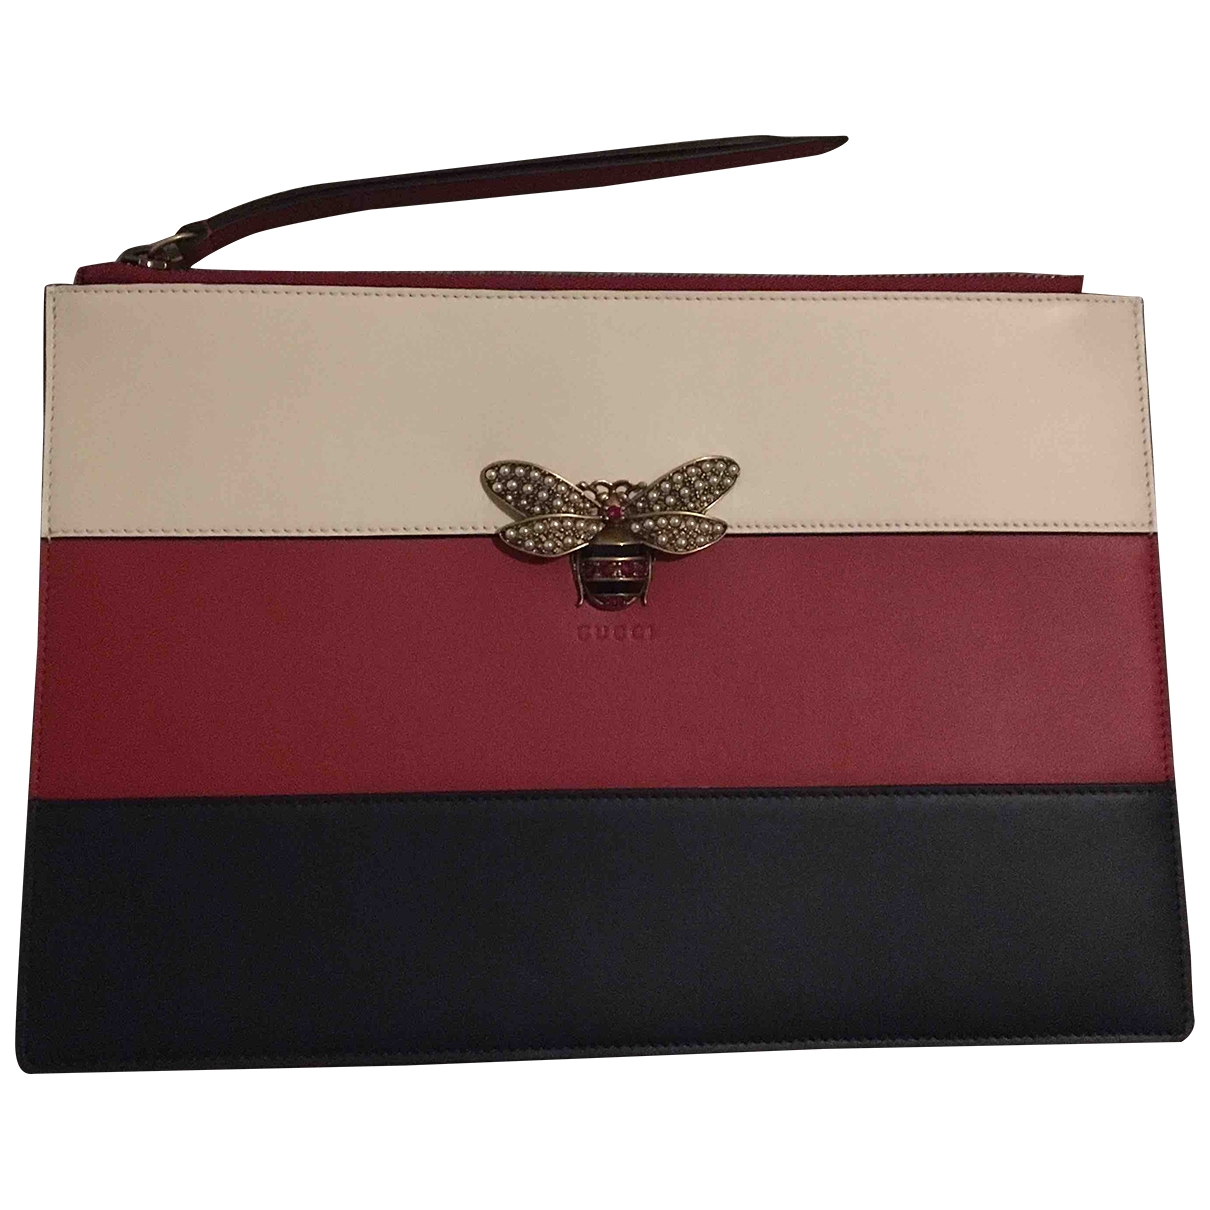 Gucci \N Multicolour Leather Clutch bag for Women \N